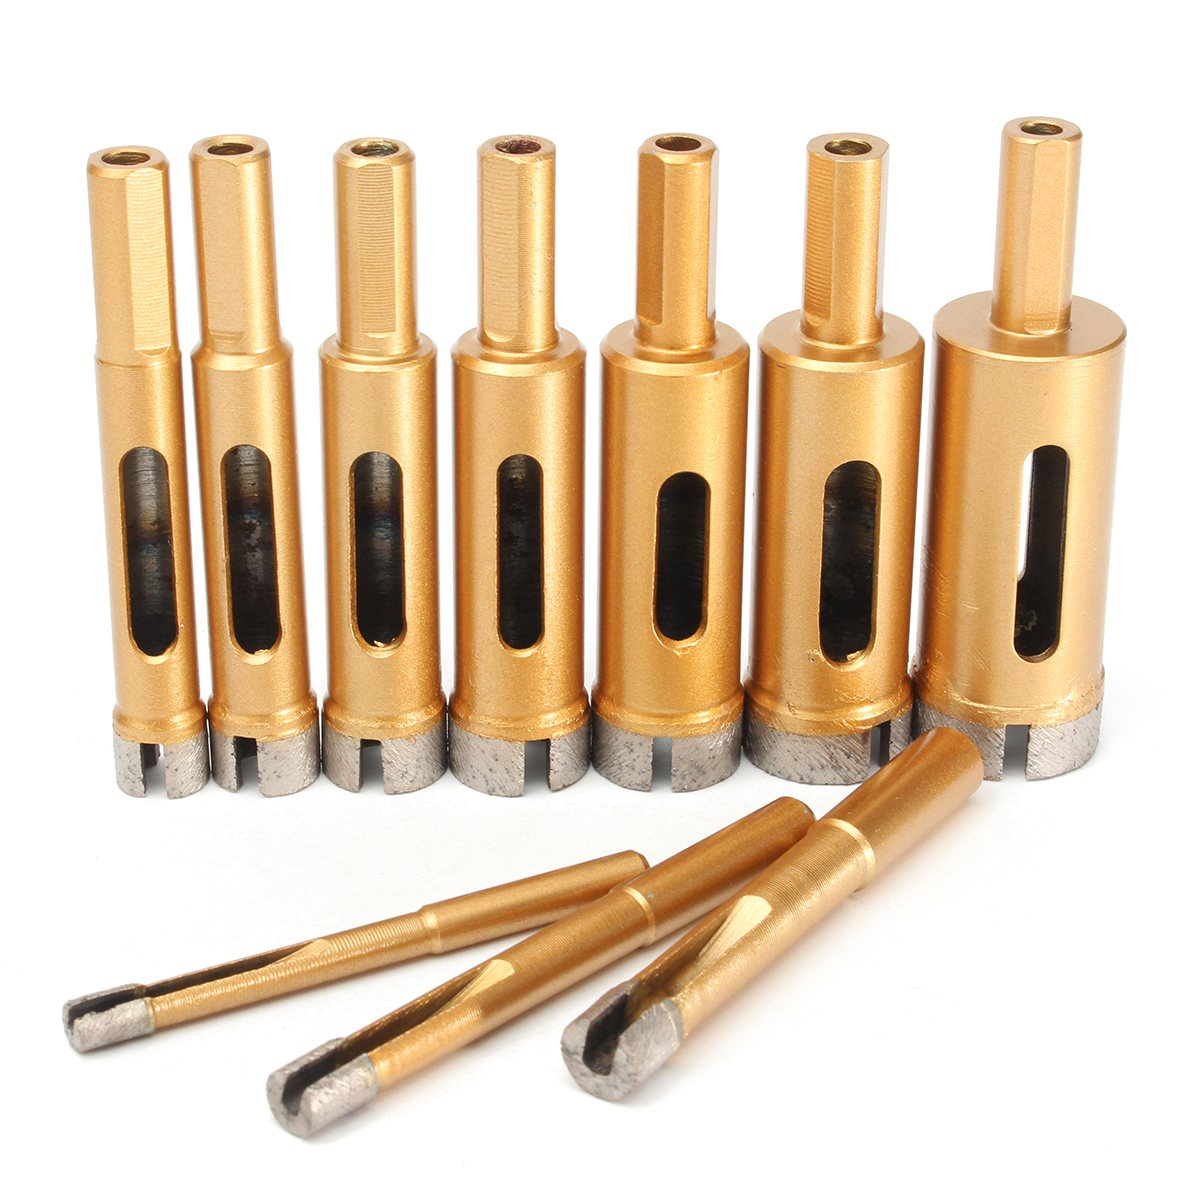 Drill Bits Temperate 6/8/10/12/14/16/18/20/22/25 Mm Diamond Drill Bit Hole Saw Tile Glass 1pcs Marble Glass Hole Cutter Drill Bits Outstanding Features